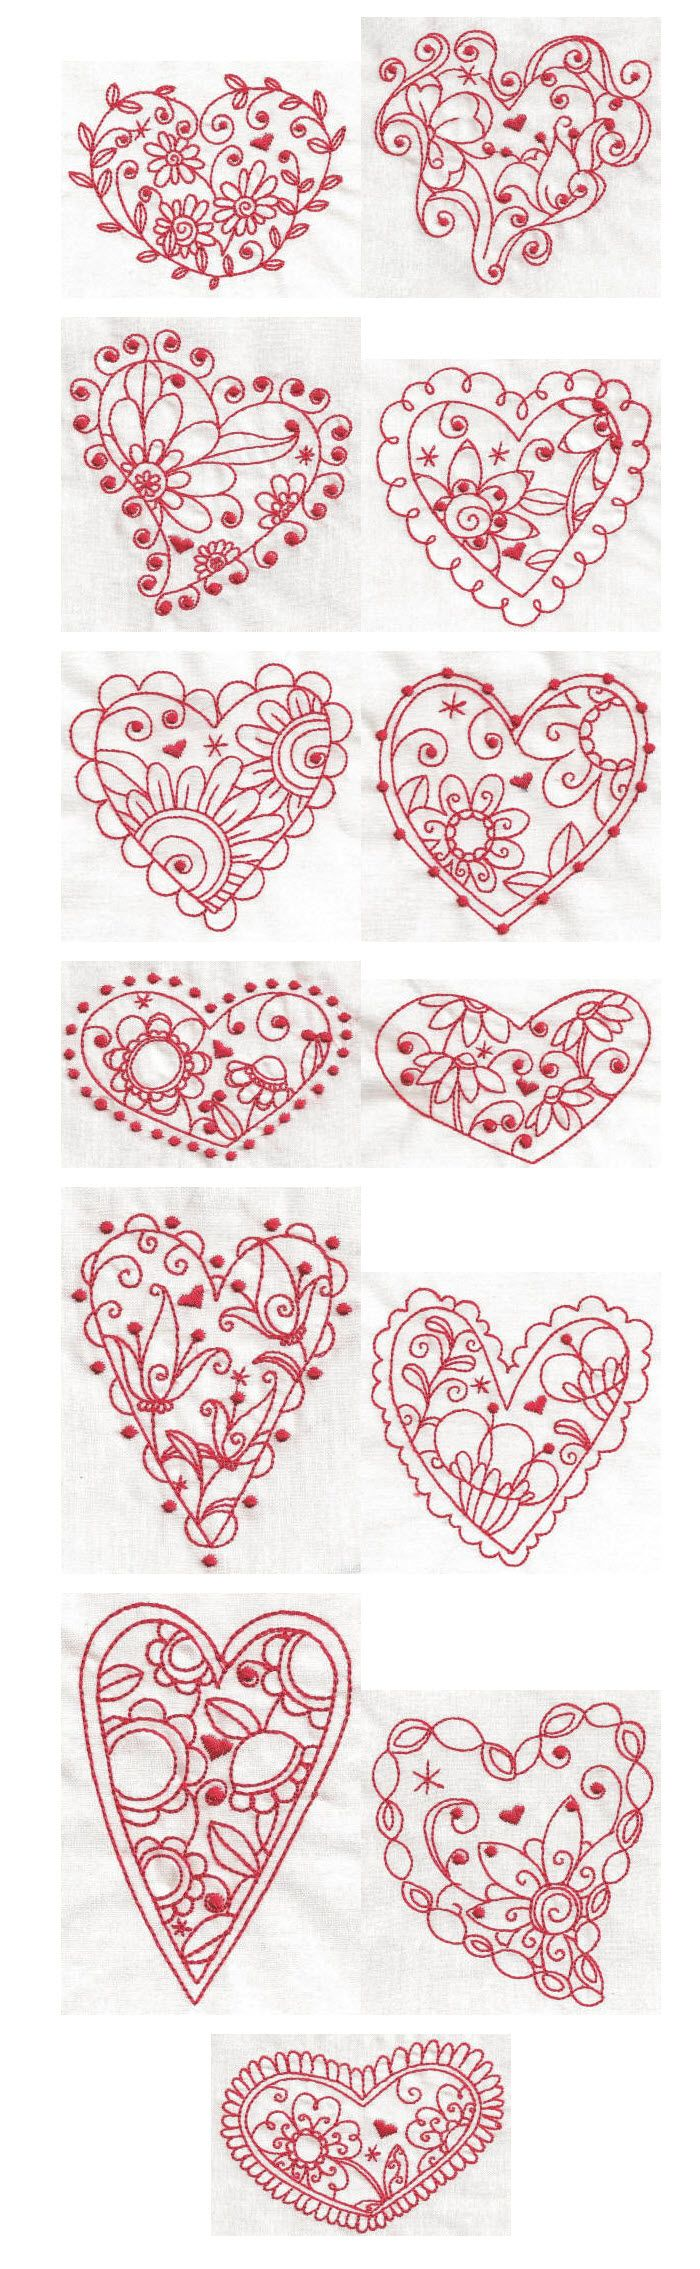 Whimsical Hearts